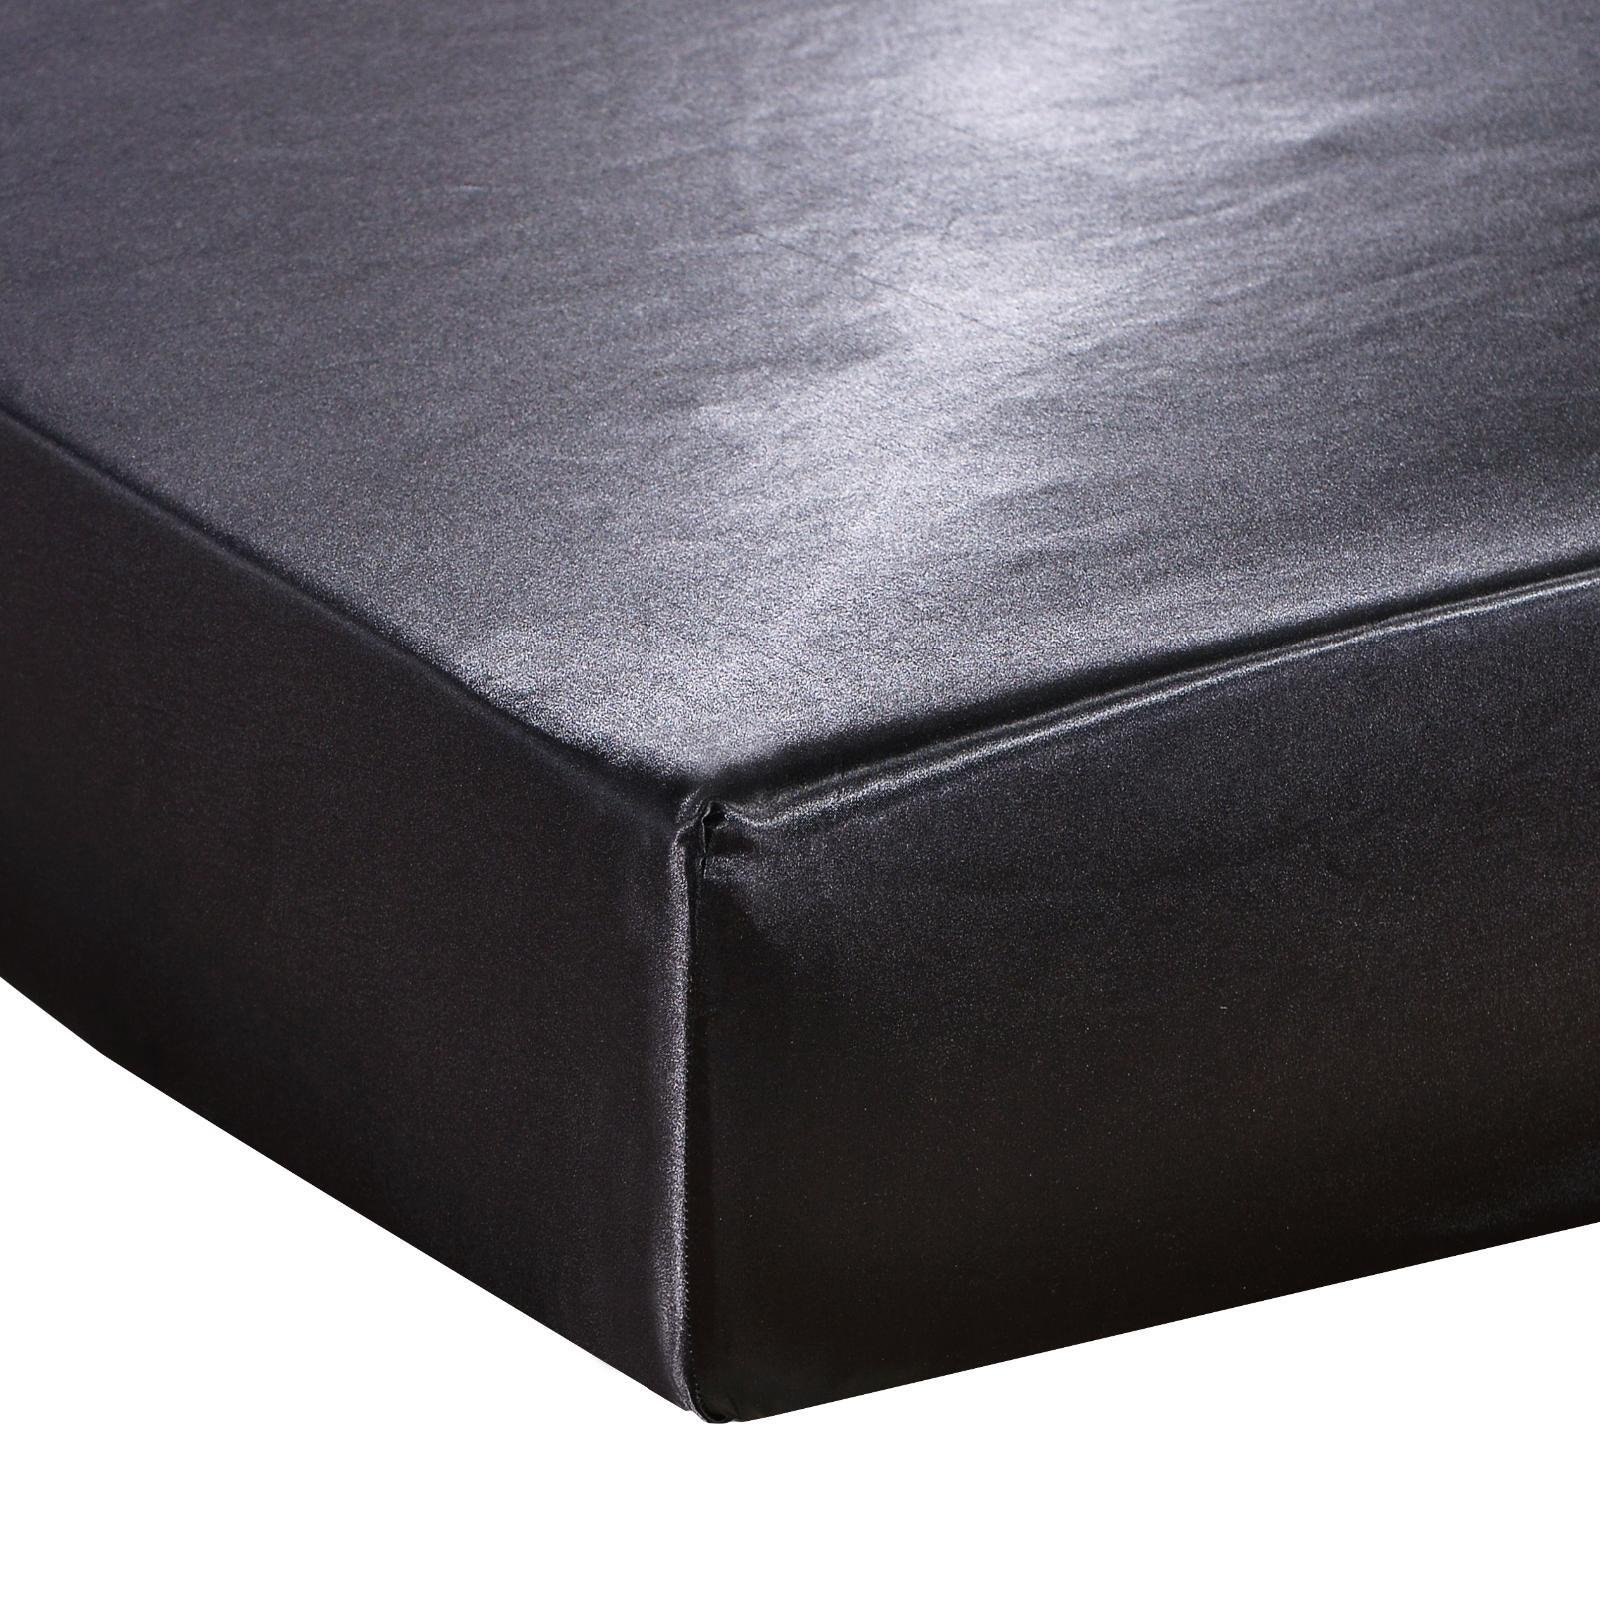 DuShow Fitted Sheet - Deep Pocket Satin Silk Bed Seet,Breathable Soft and Comfortable - Wrinkle, Fade, Stain and Abrasion Resistant(Full,Black)